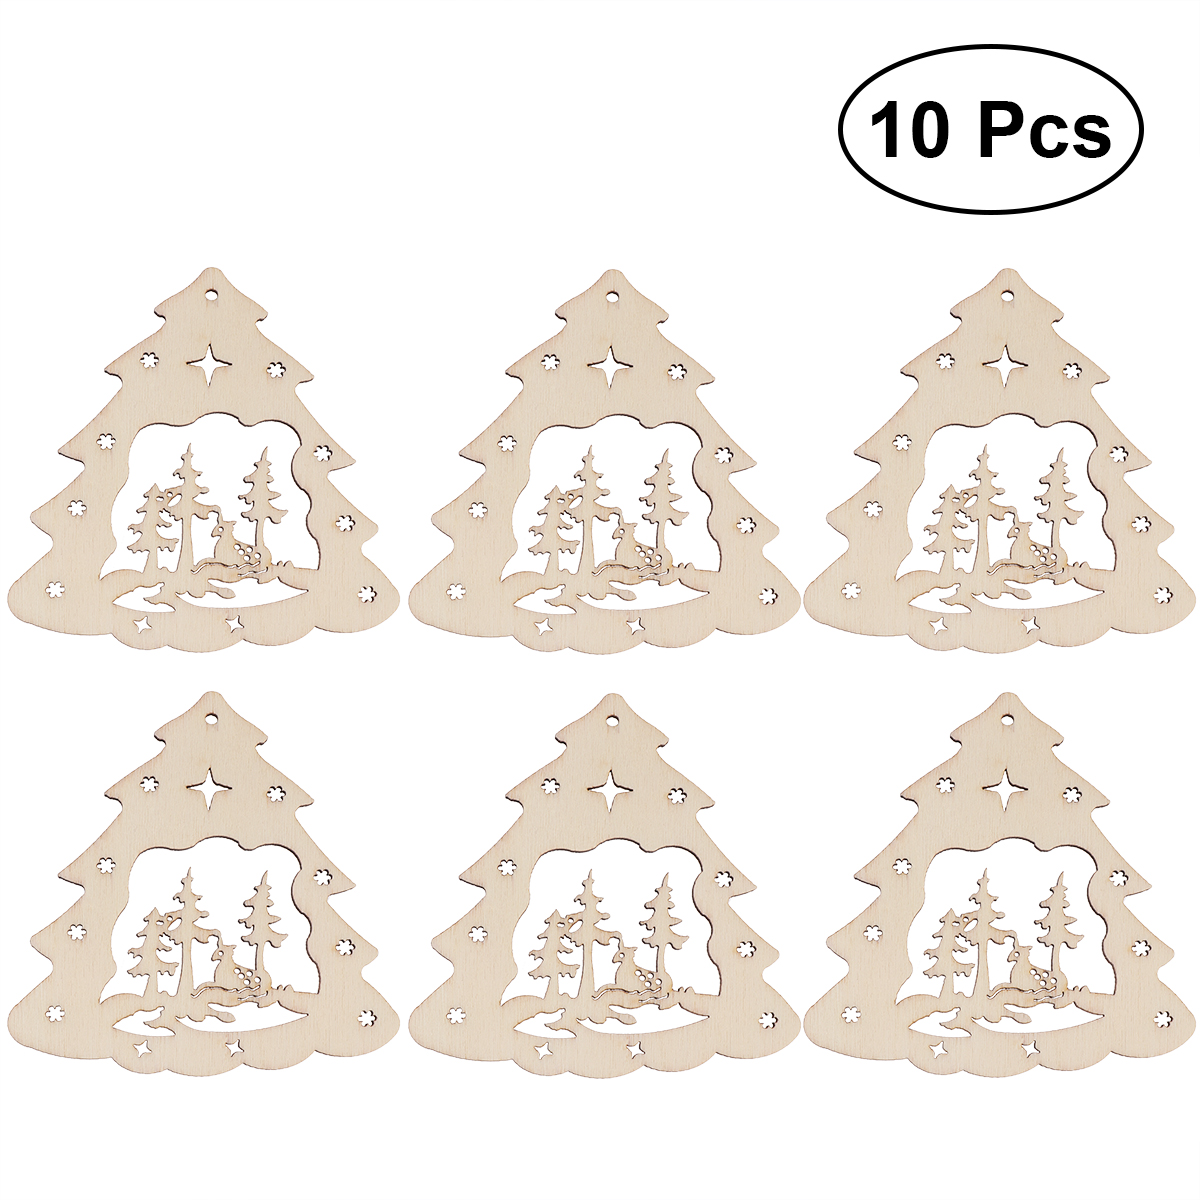 Christmas Tree Cutout.Us 1 68 39 Off 10pcs Christmas Tree Wooden Discs Diy Craft Decor Wood Cutout Slices Ornaments Christmas Tree Pendants Tags In Wood Diy Crafts From